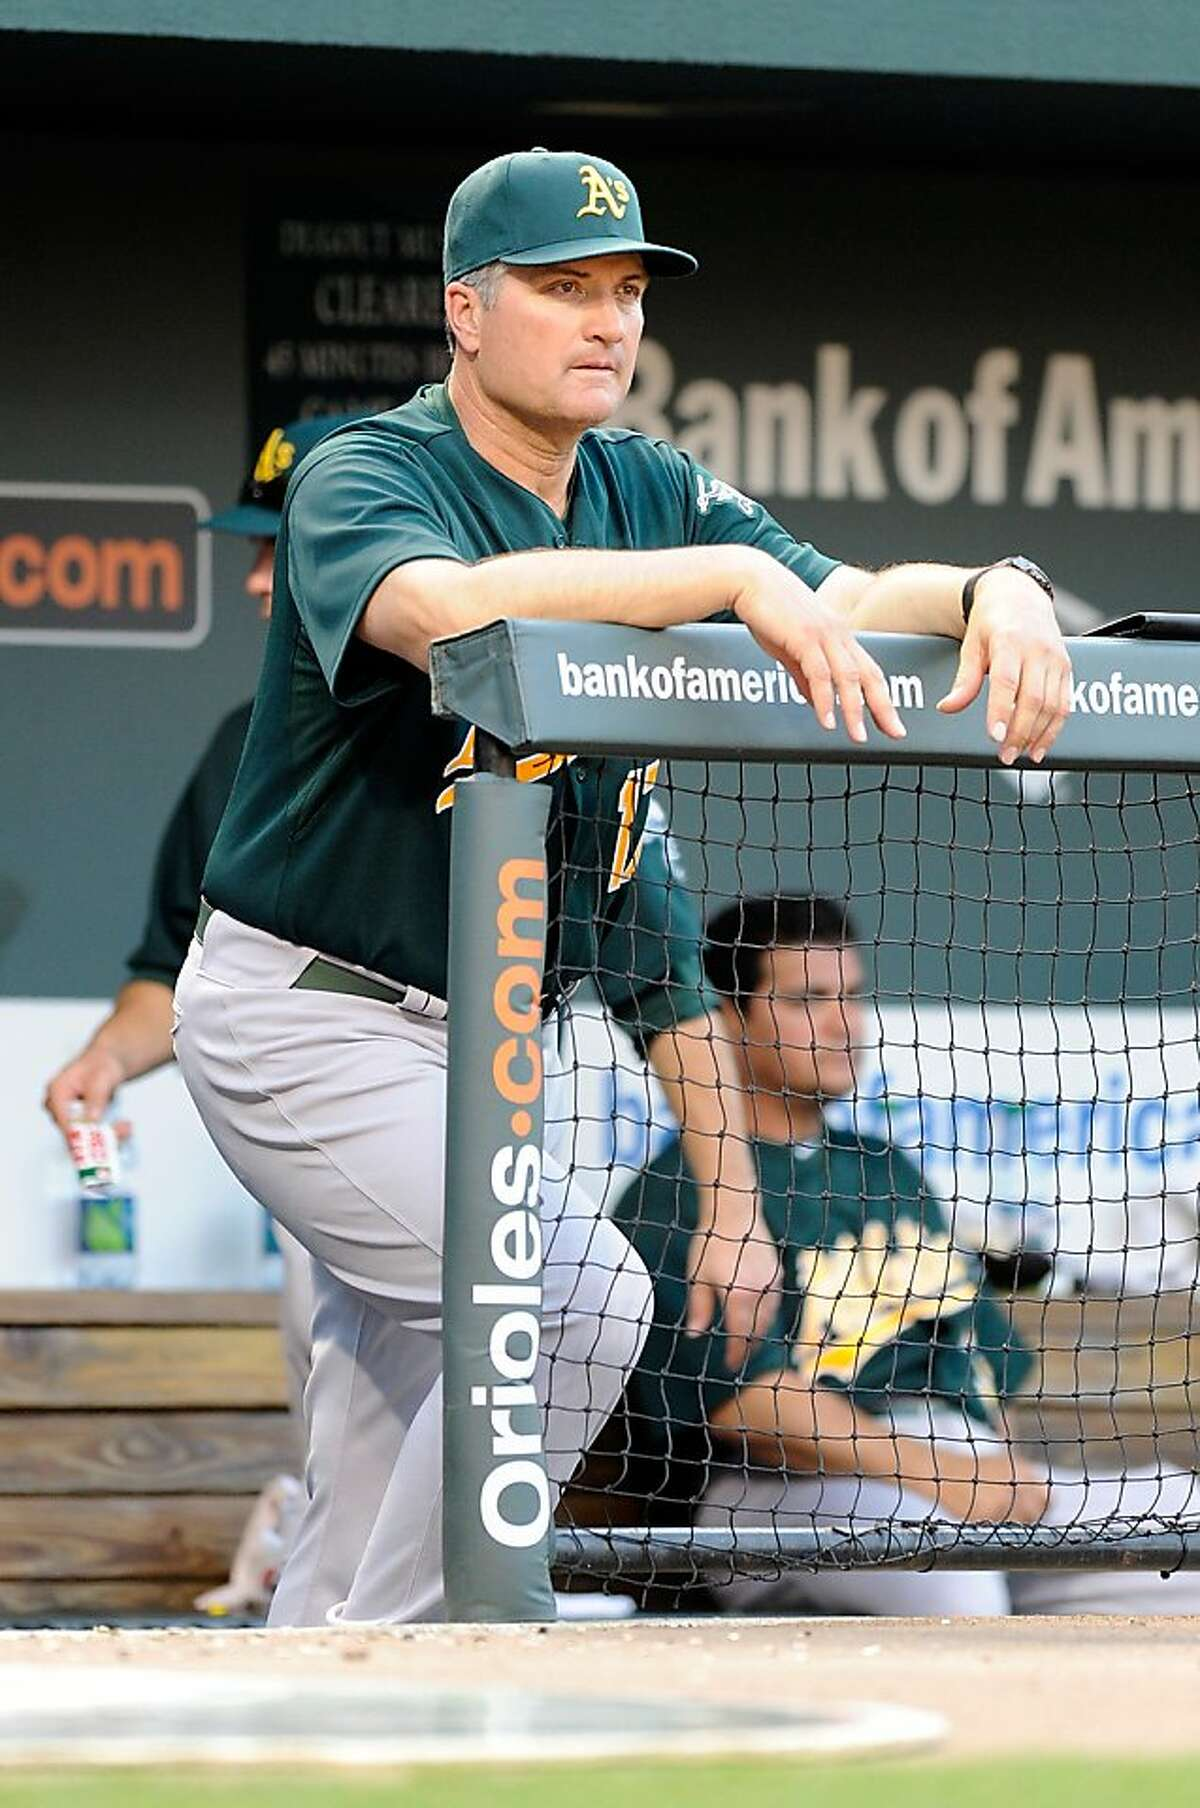 BALTIMORE, MD - FILE: Manager Bob Geren #17 of the Oakland Athletics watches the game against the Baltimore Orioles at Oriole Park at Camden Yards on June 6, 2011 in Baltimore, Maryland. According to reports on June 9, 2011, Geren was fired as manager ofthe A's and will be replaced by Bob Melvin who will be the interim manager.